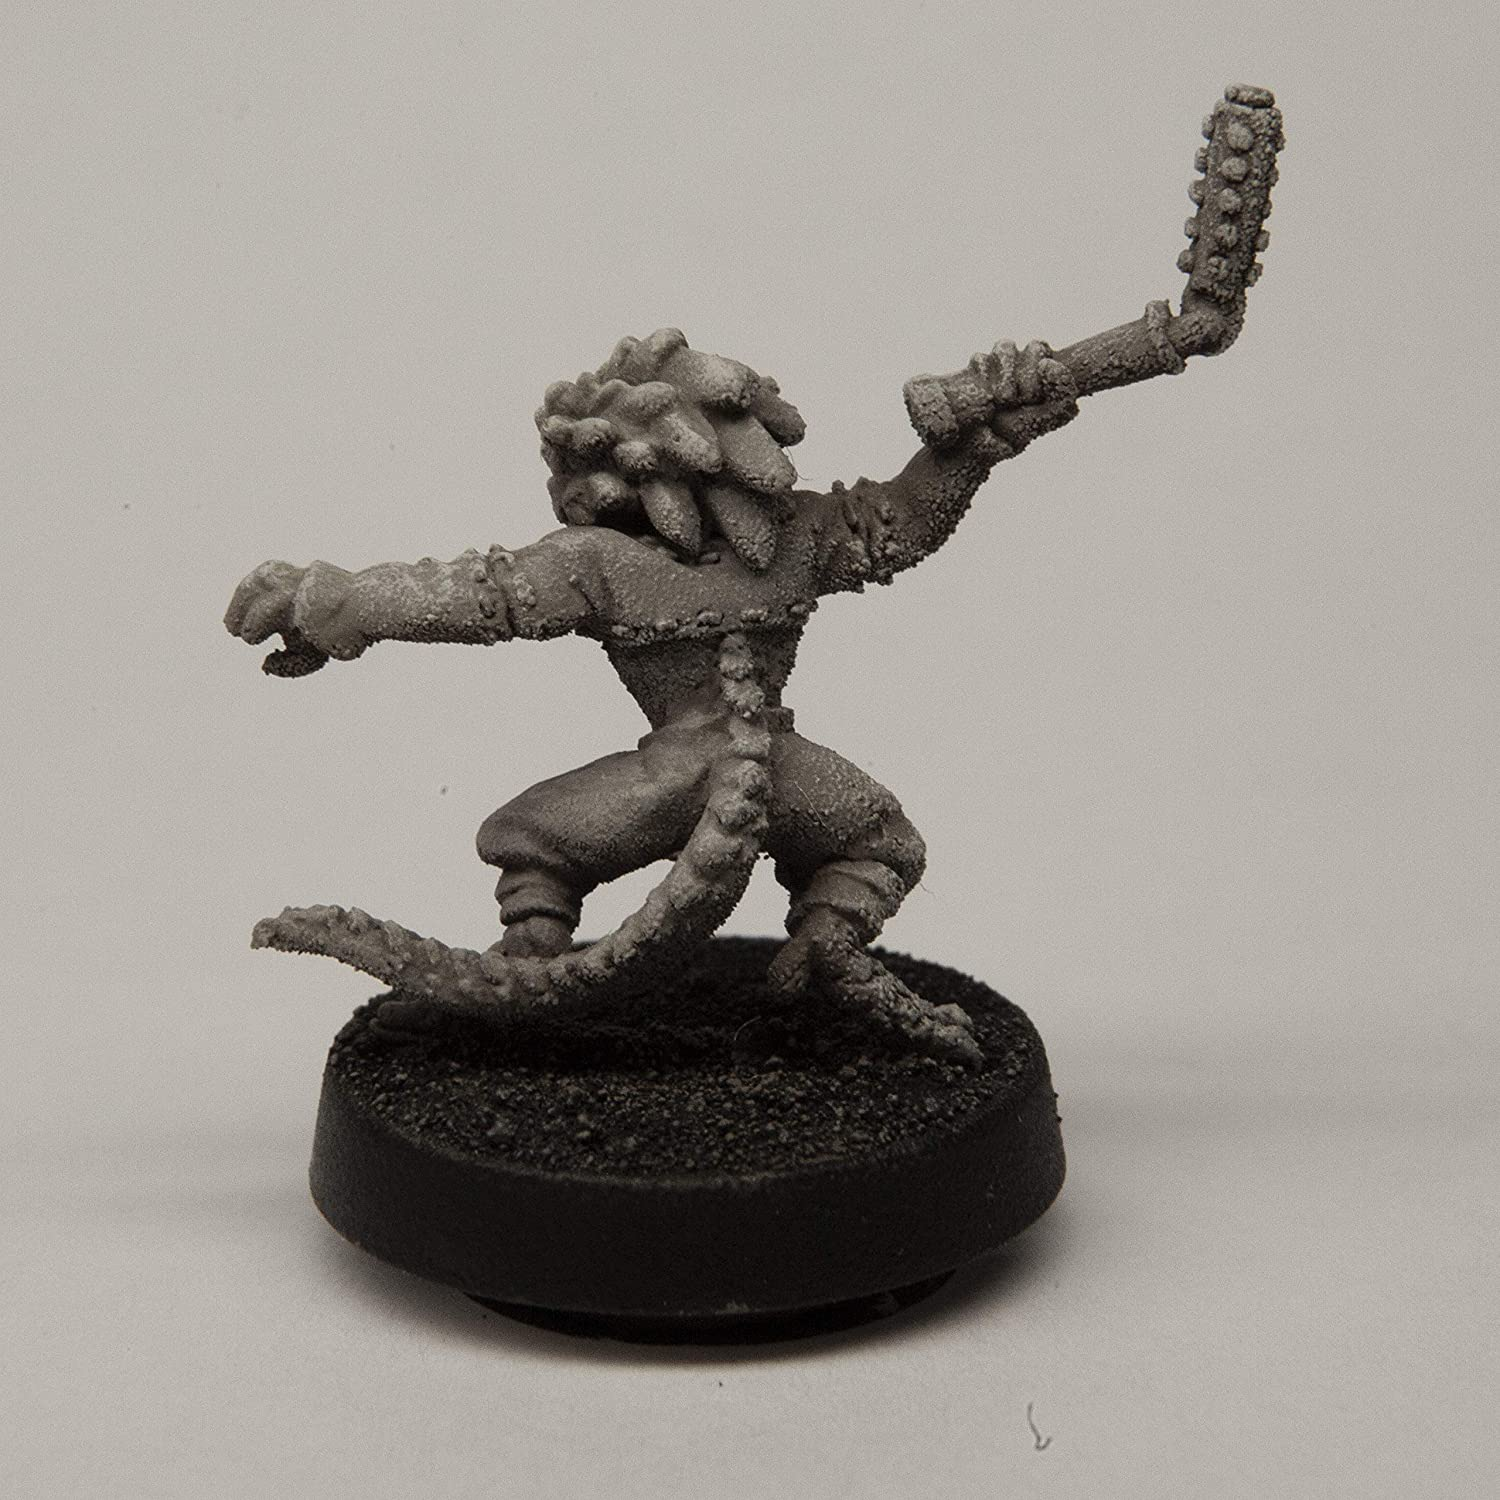 Made in US Stonehaven Miniatures for 28mm Scale Table Top War Games Stonehaven Male Kobold Monk Miniature Figure